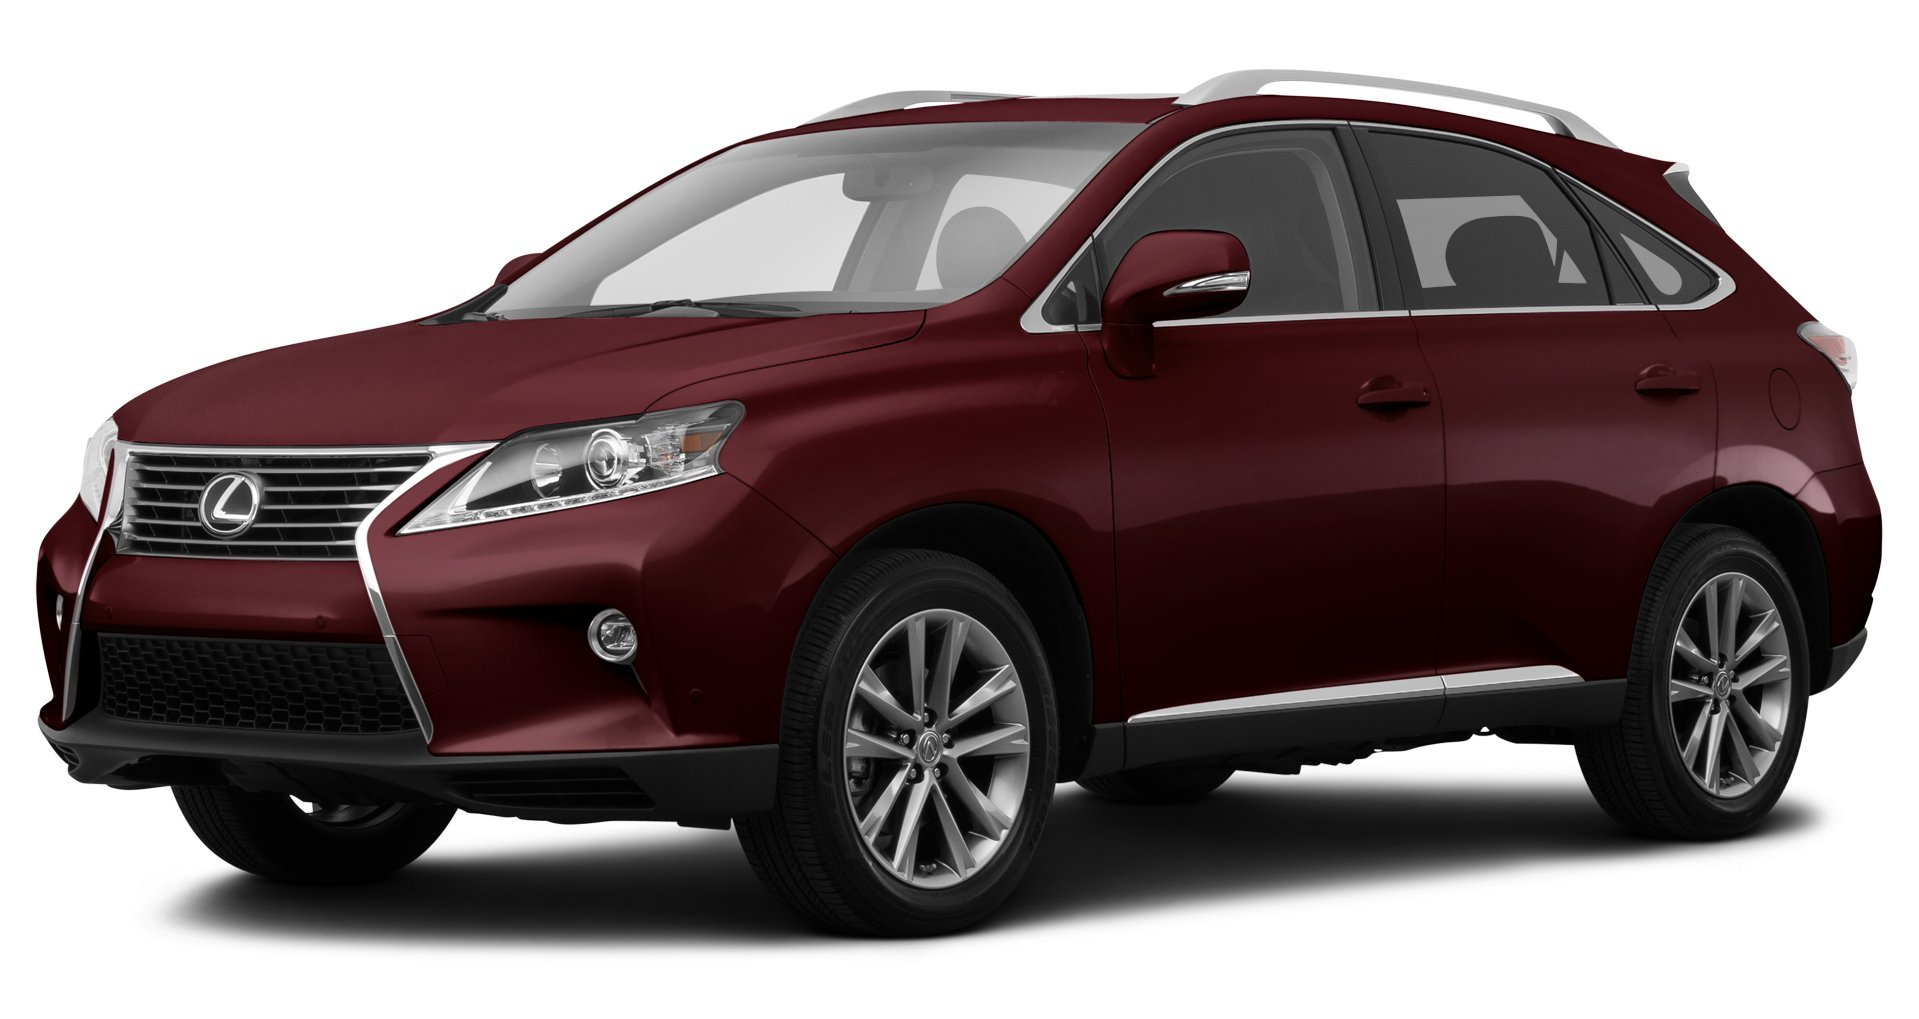 drive suv rx price photo lexus front base reviews features wheel photos